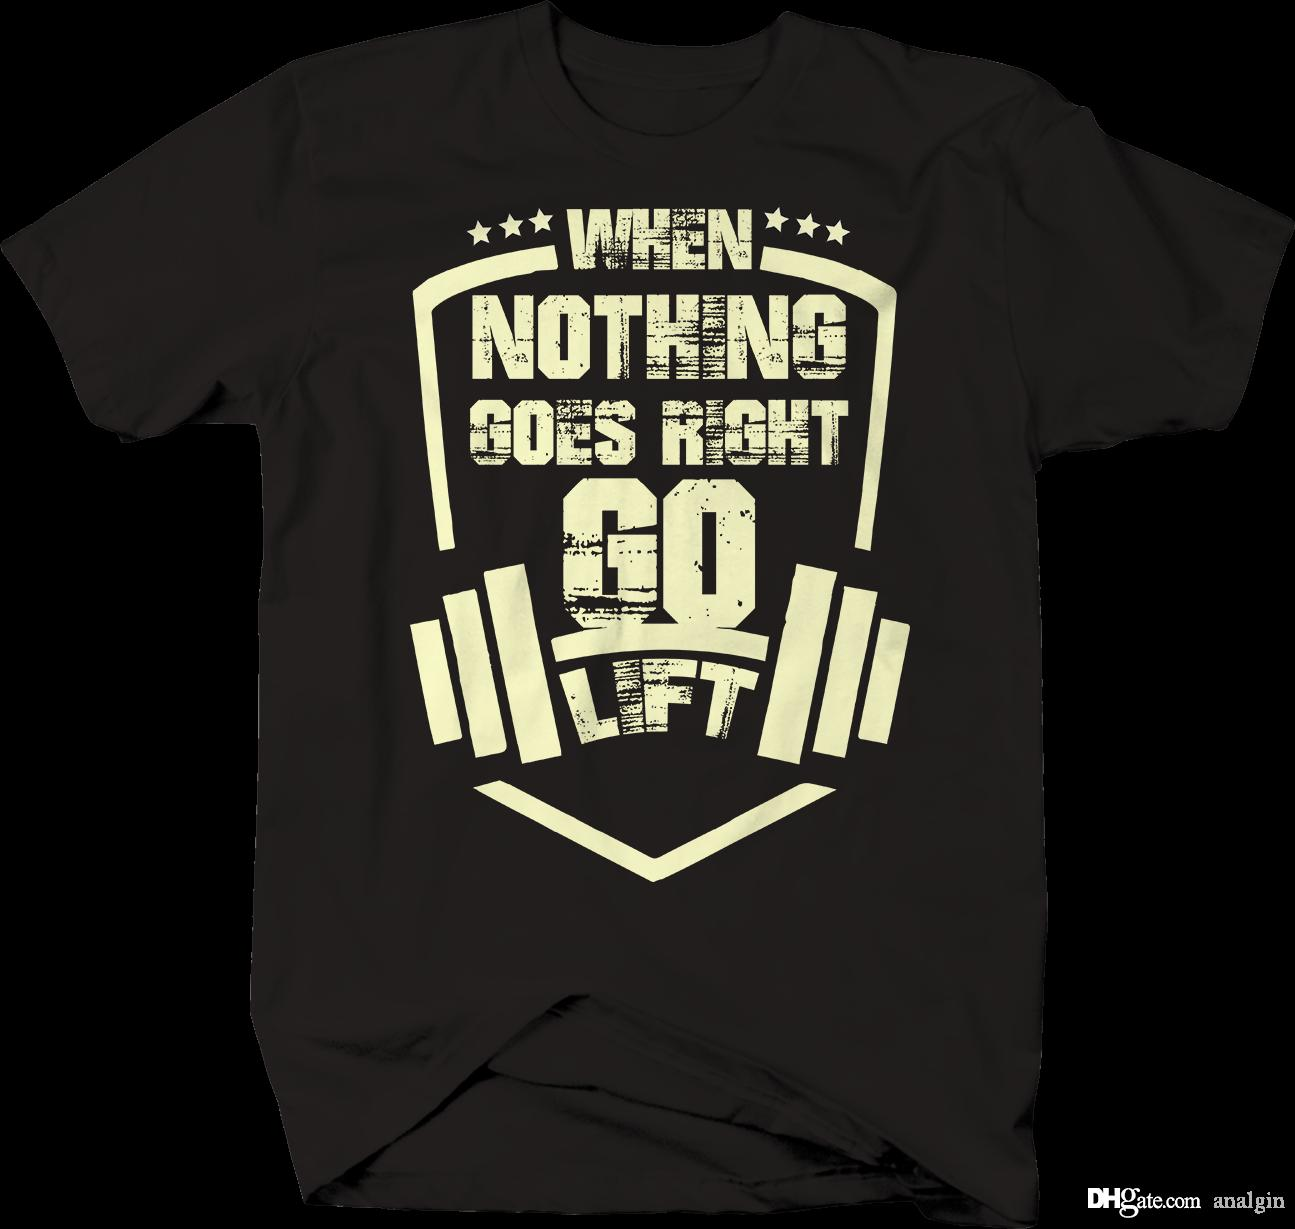 0a374d787 Nothing Goes Right Lift Workout Gym T Shirt Funny Ts T Shirts Buy From  Analgin, $10.03| DHgate.Com